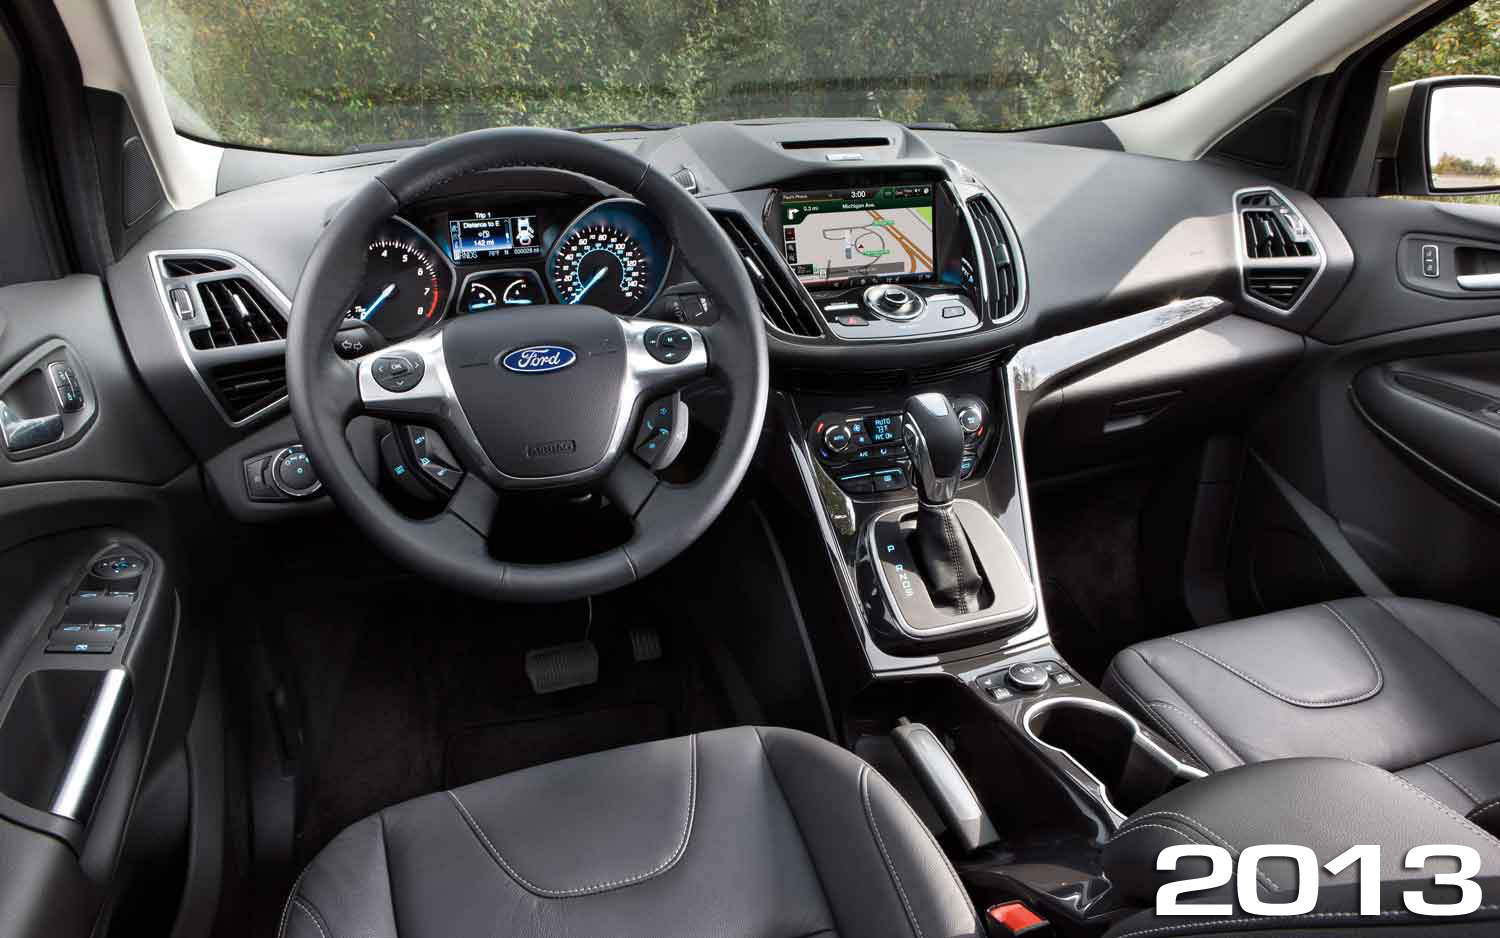 2013 Ford Escape Review Interior, Exterior, Price and ...